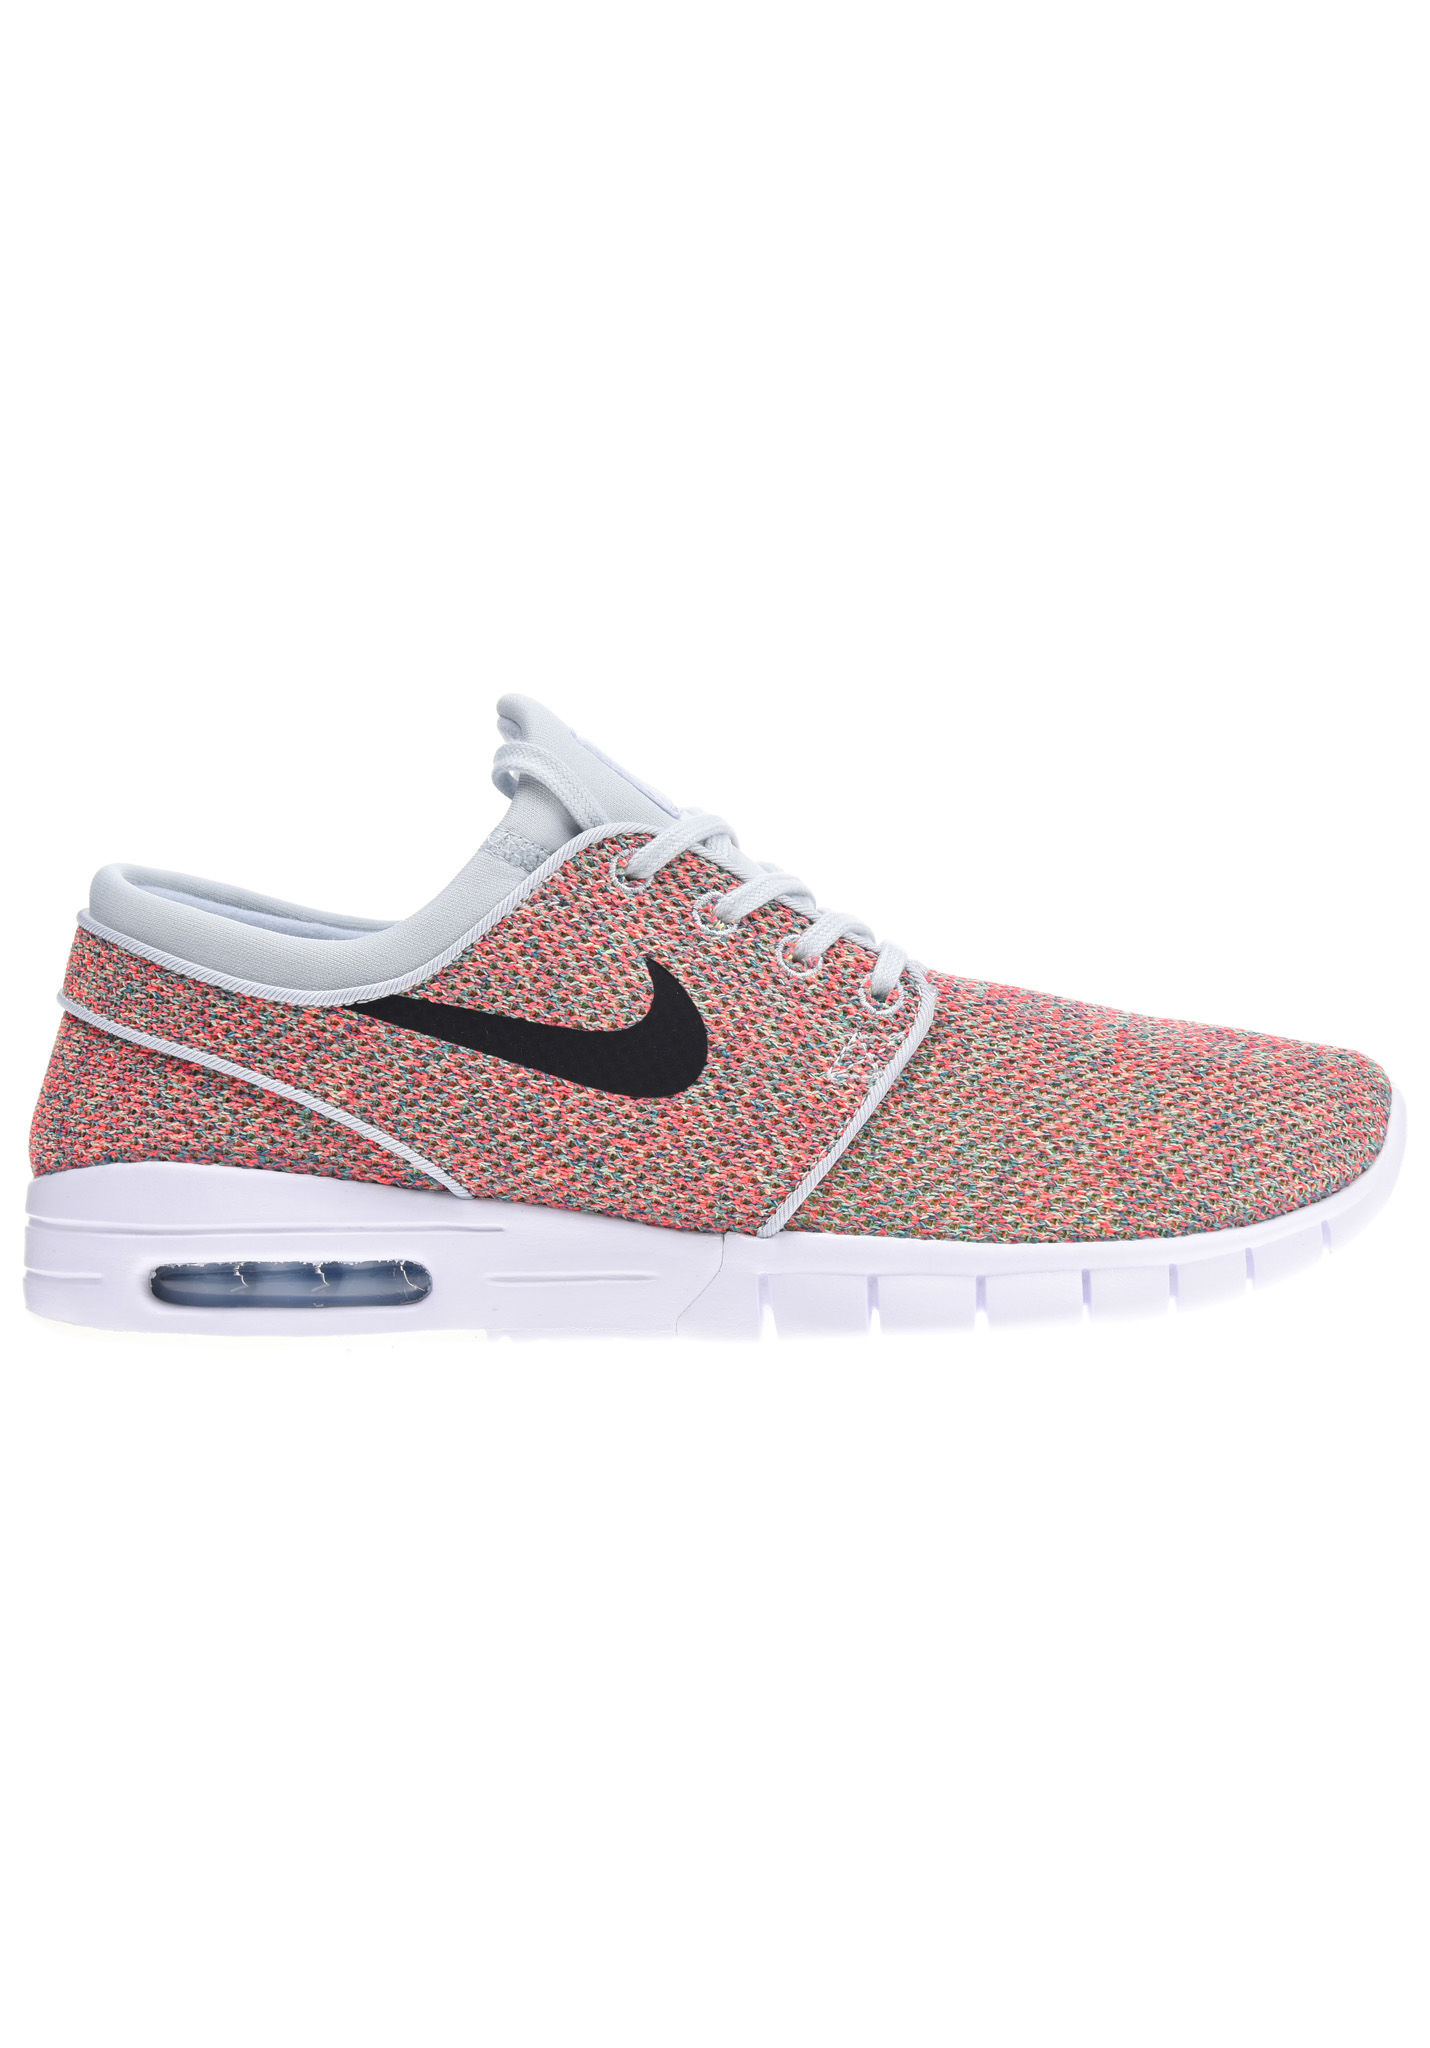 new style d84c3 f041d ... where to buy nike sb stefan janoski für herren und damen online kaufen planet  sports e058b